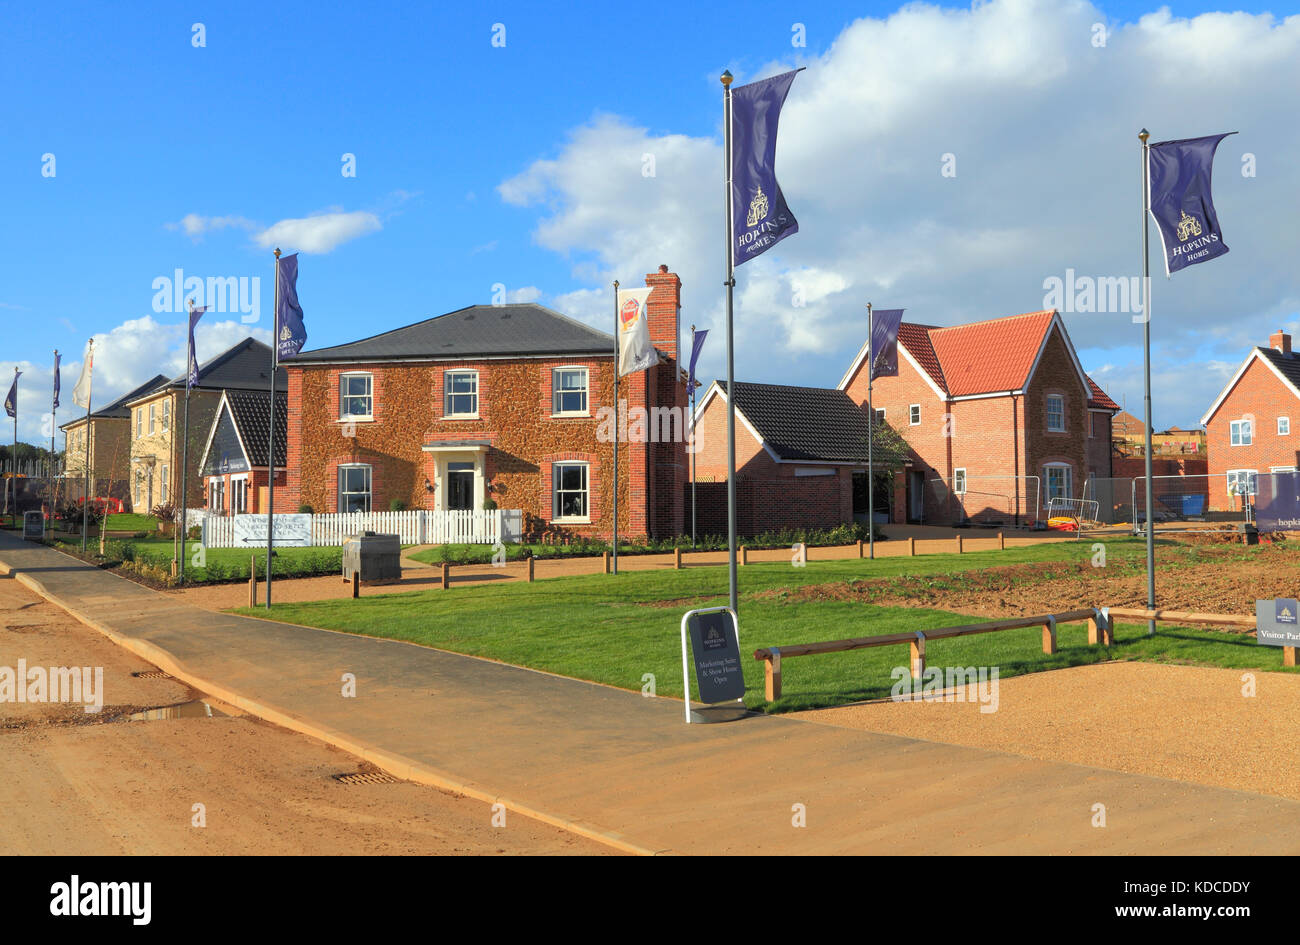 Hopkins Homes, sign, new housing development, Heacham, Norfolk, England, UK, previously agricultural land, developers, - Stock Image